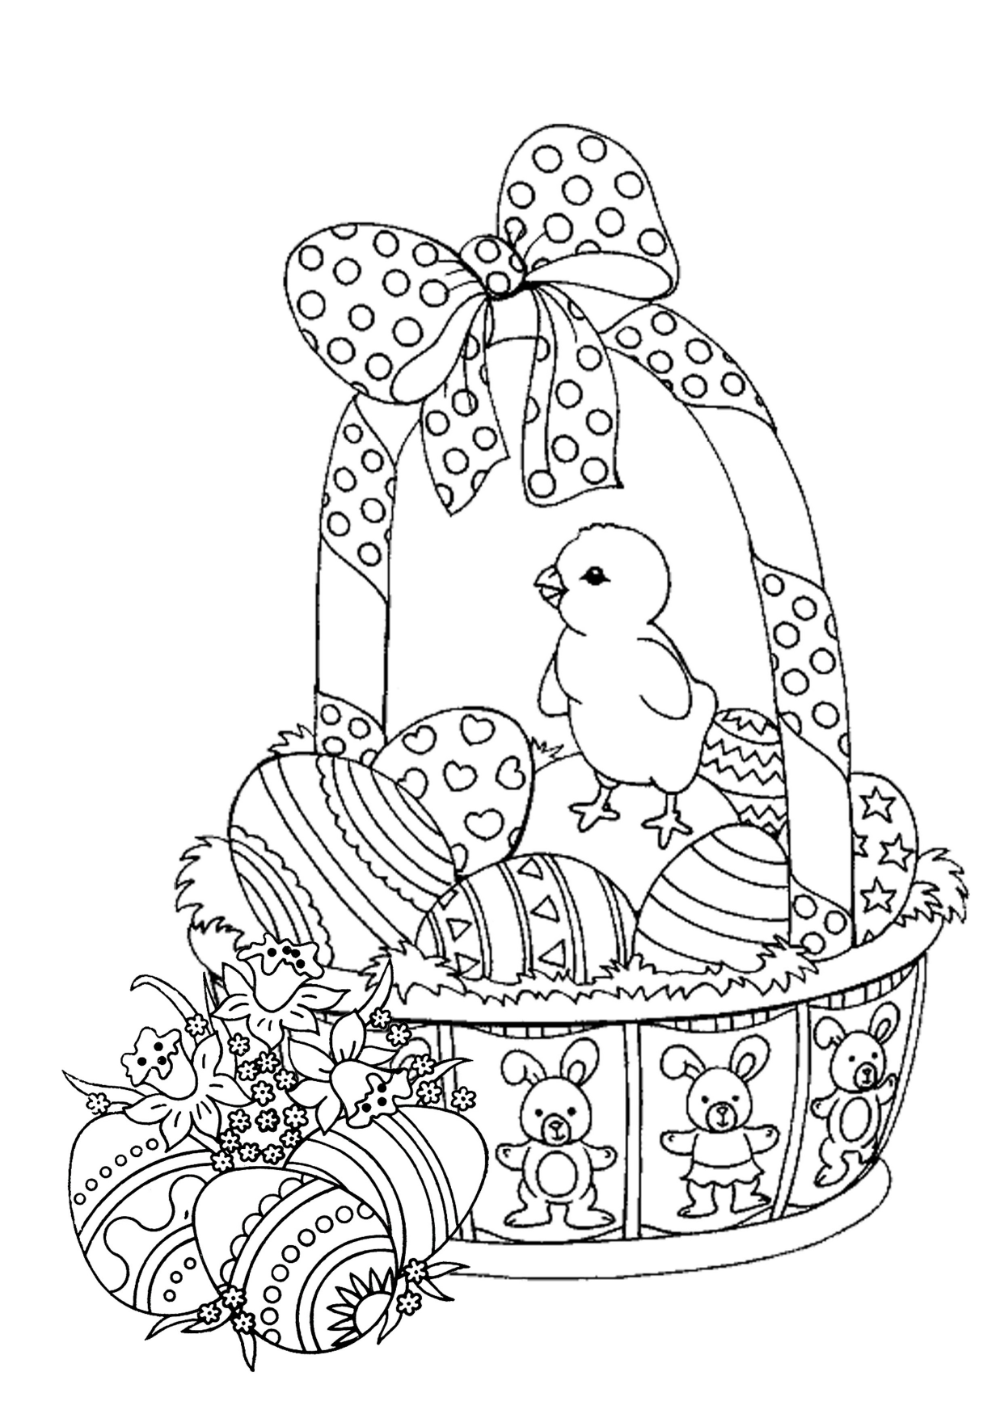 Easter Coloring Pages (With images) | Owl coloring pages ...